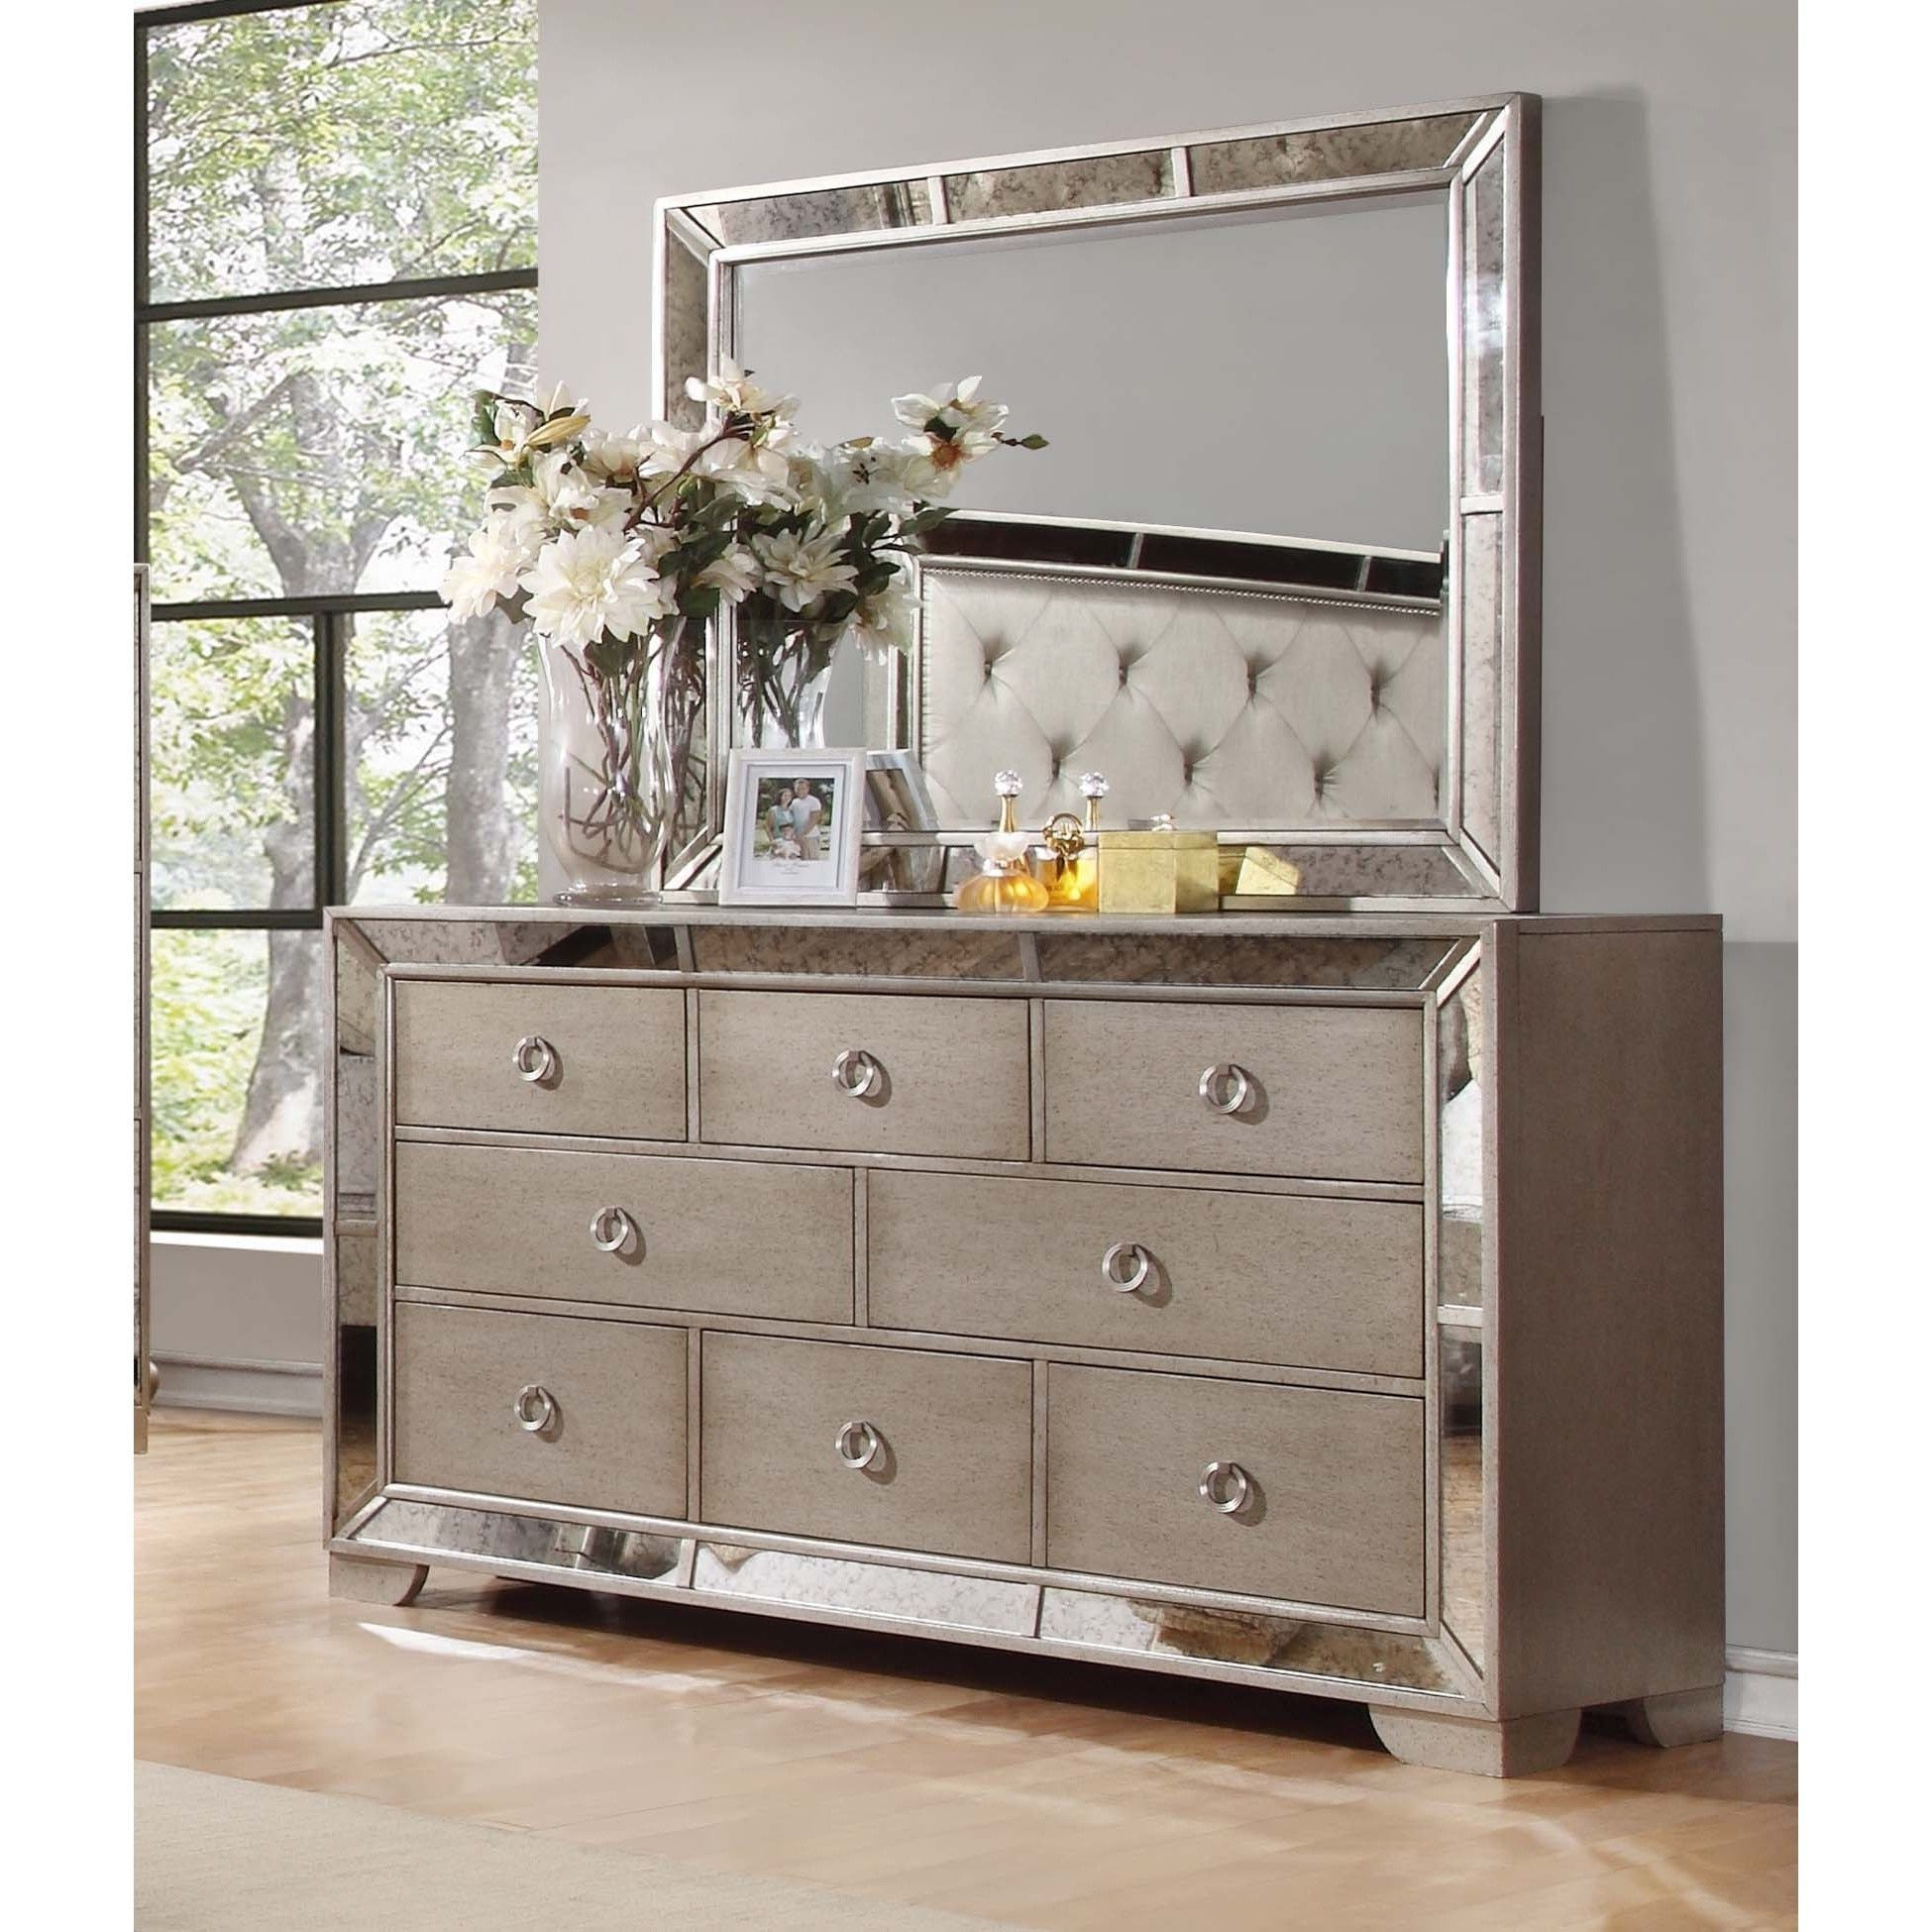 Online Shopping Bedding Furniture Electronics Jewelry Clothing More In 2020 With Images Dresser With Mirror Shabby Chic Dresser Mirrored Furniture